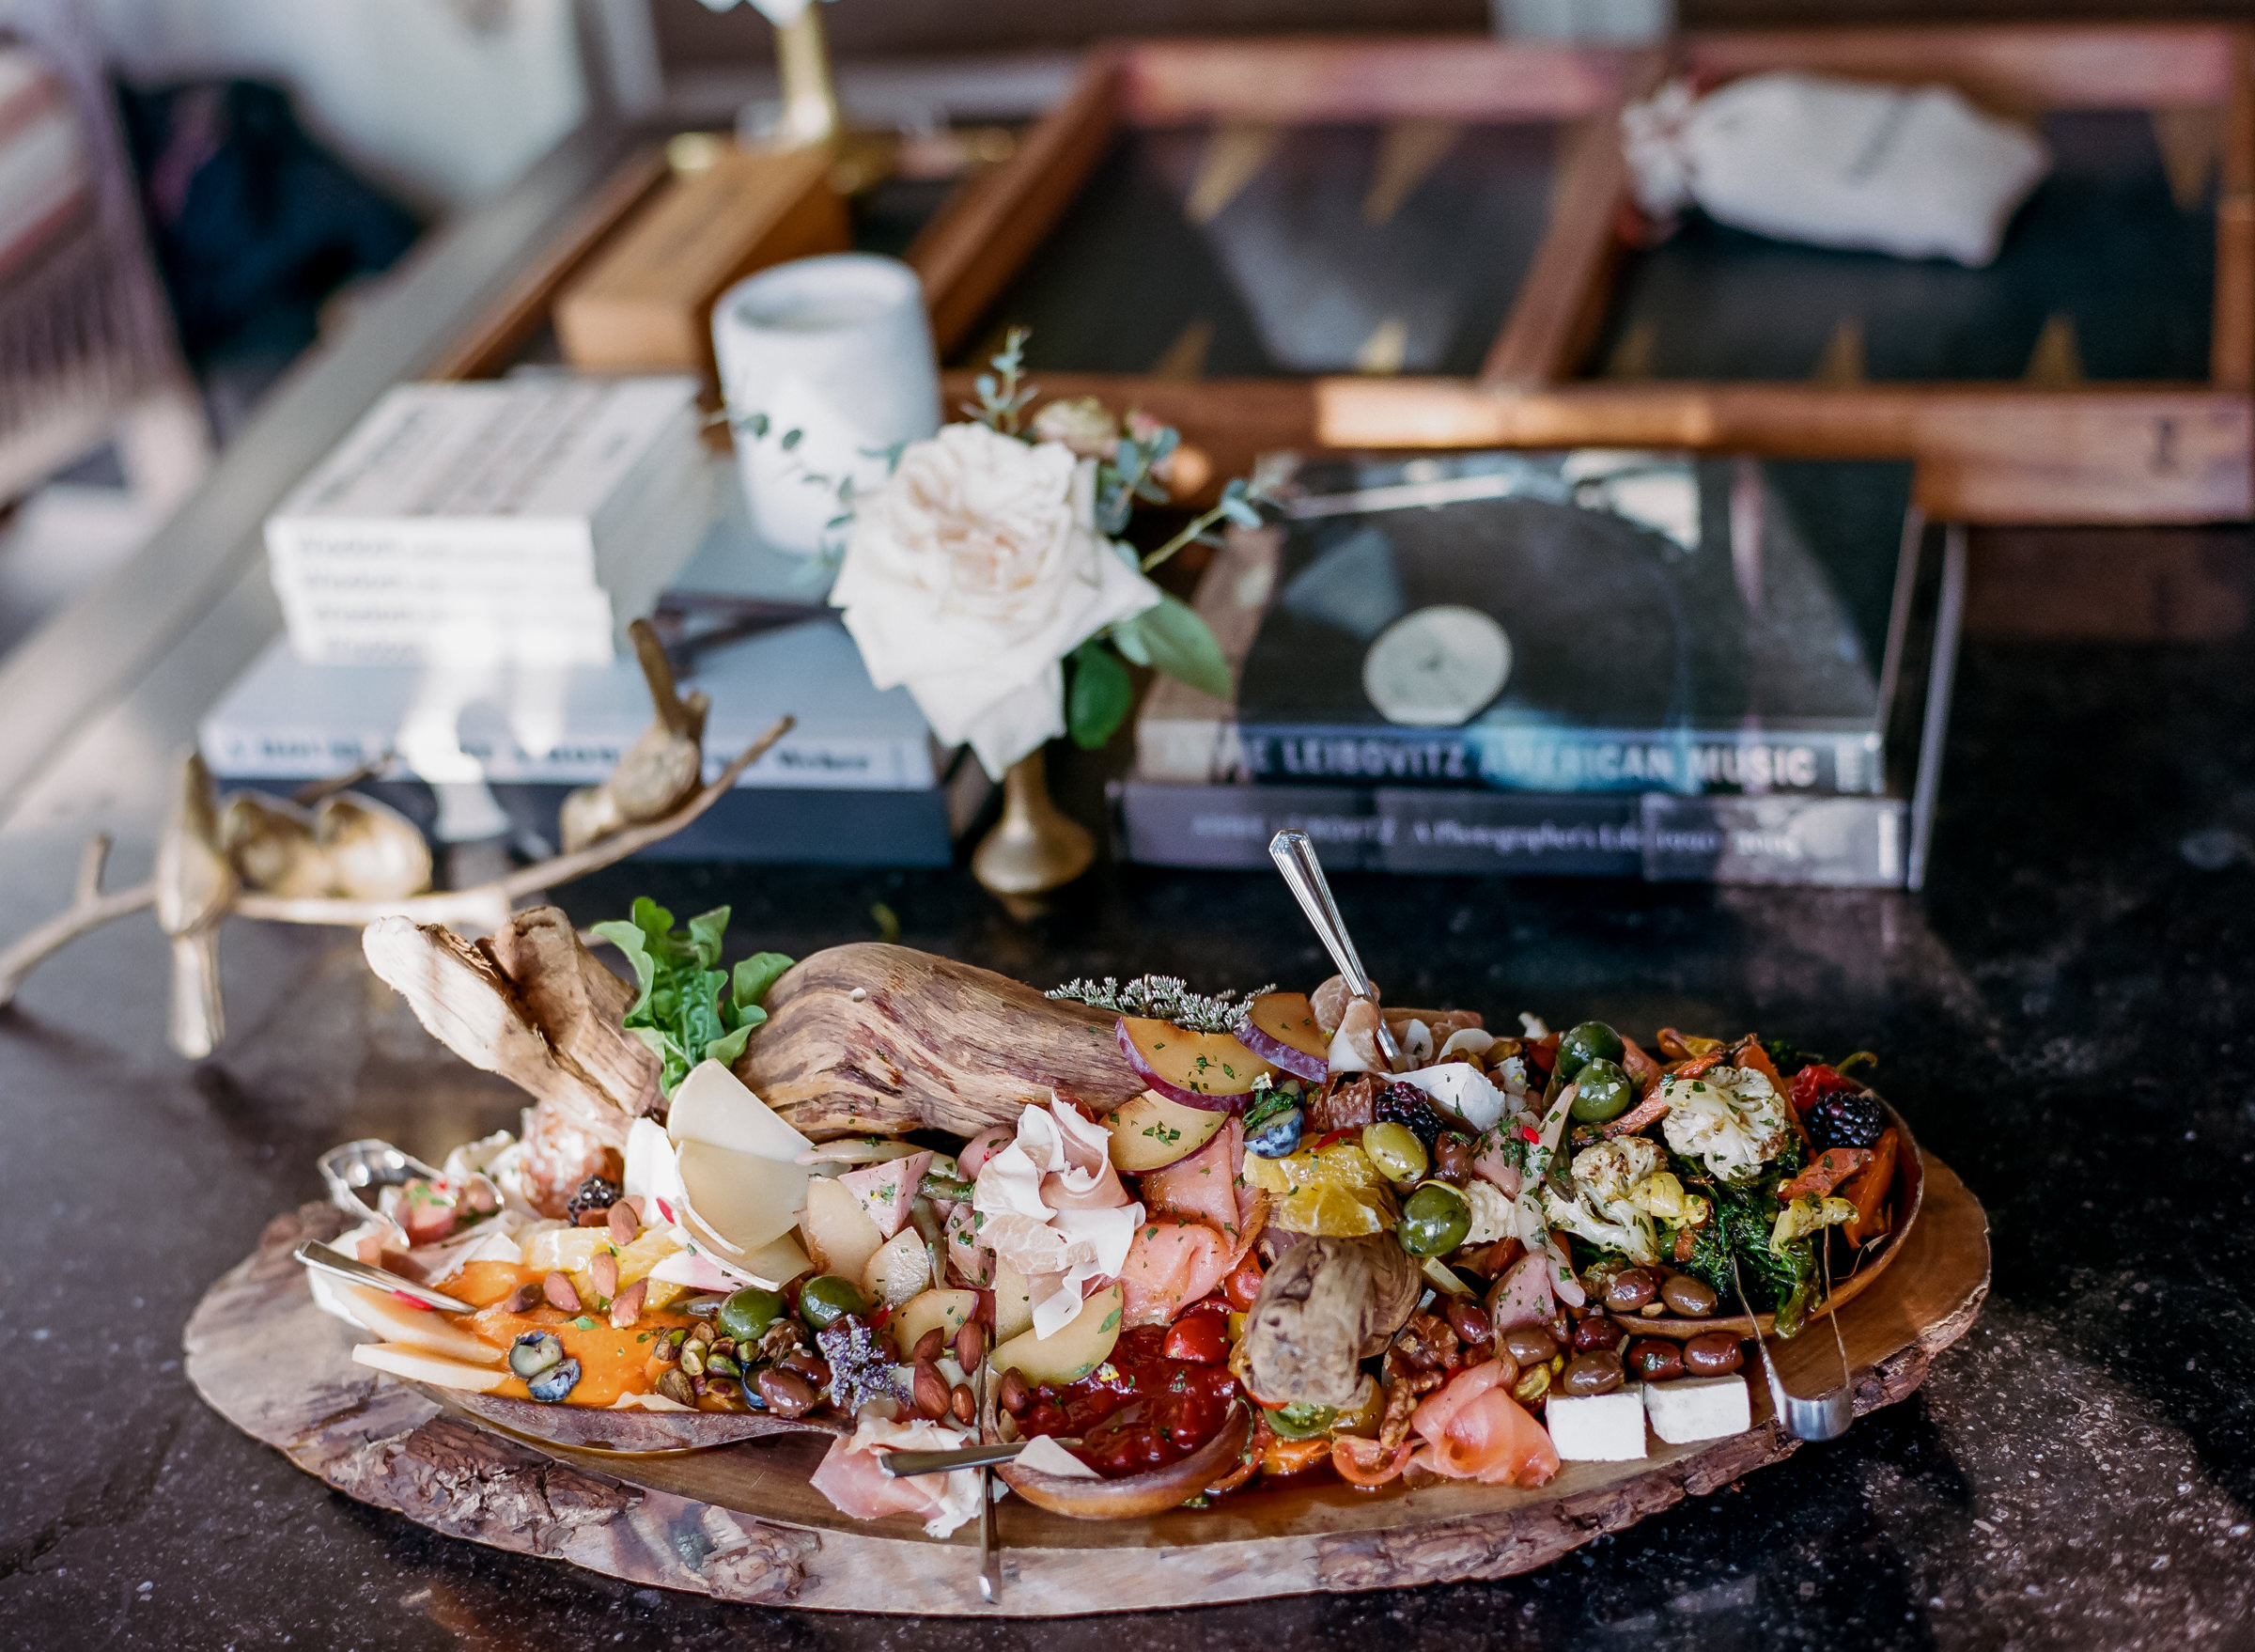 reception-antipasto-platter-against-books-and-backgammon-table-amyandstuart-photography